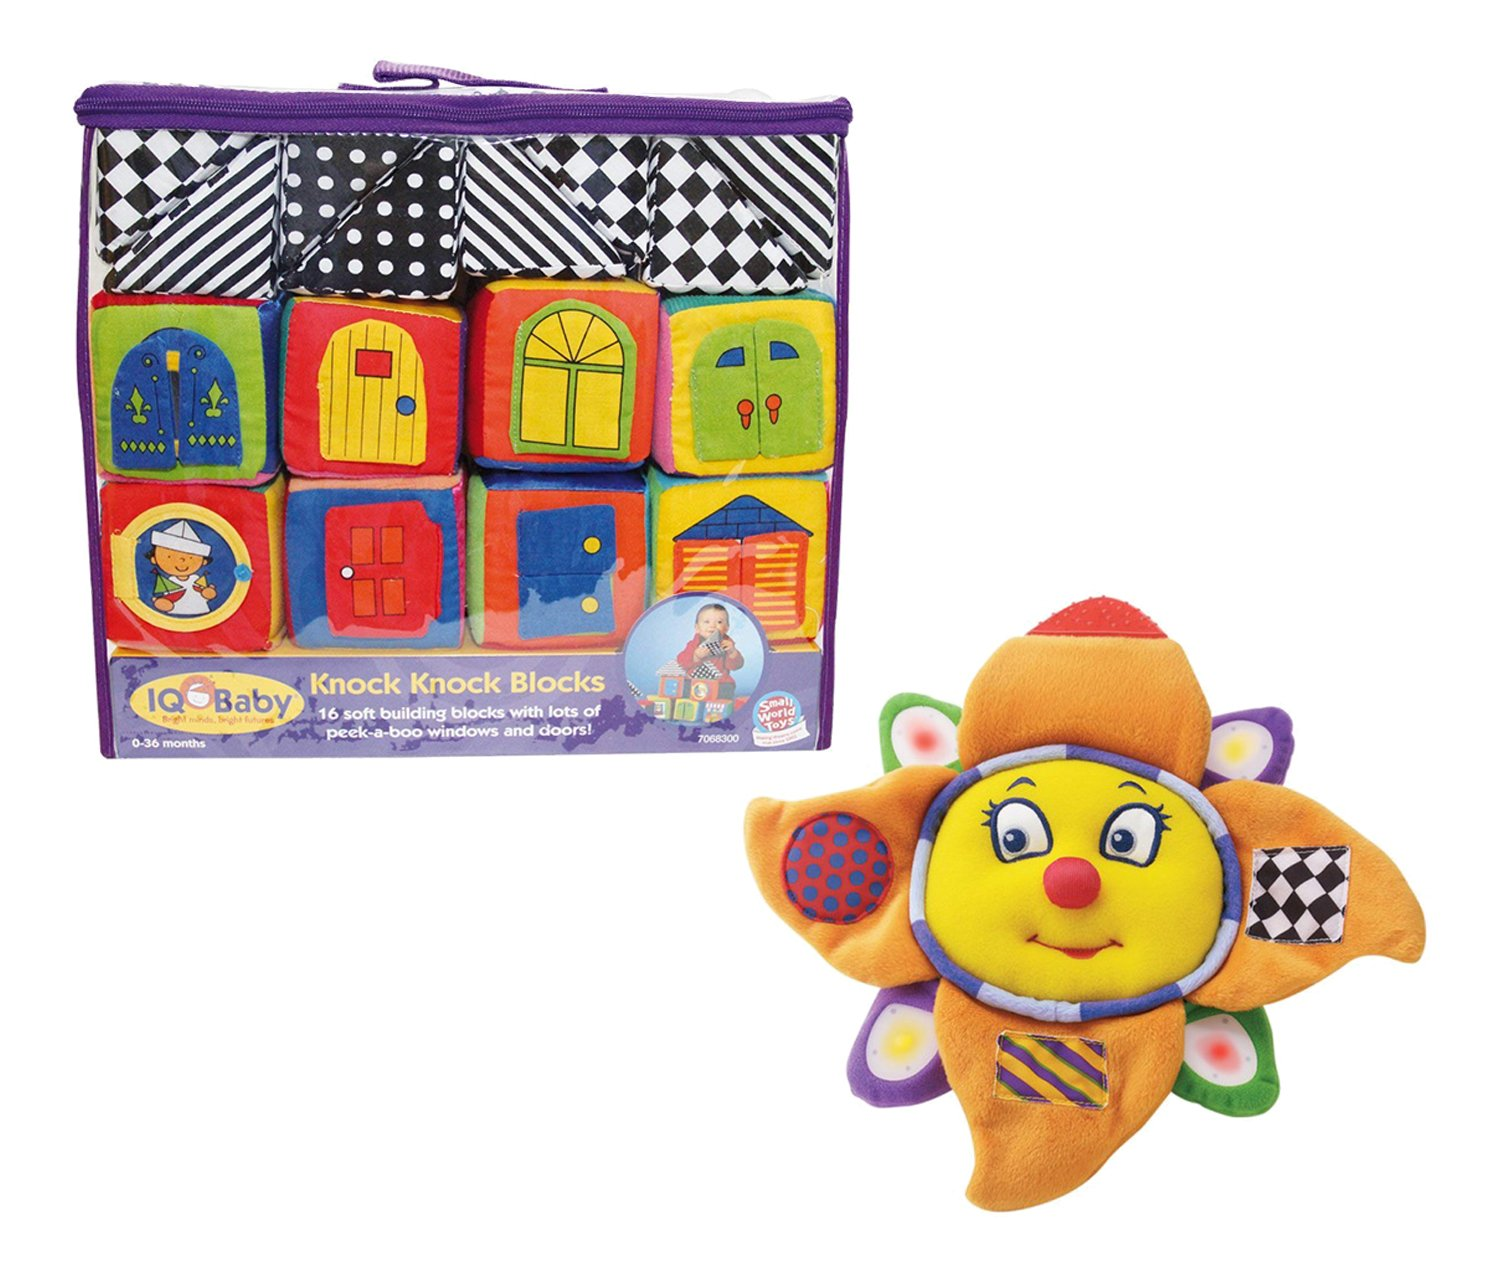 523a5fd7dabf ... Small World Toys IQ Baby Knock Knock Soft Building Blocks (16pc Set)  and Neurosmith Sunshine Symphony - Classical Music - Sparkling Lights -  Lullaby ...